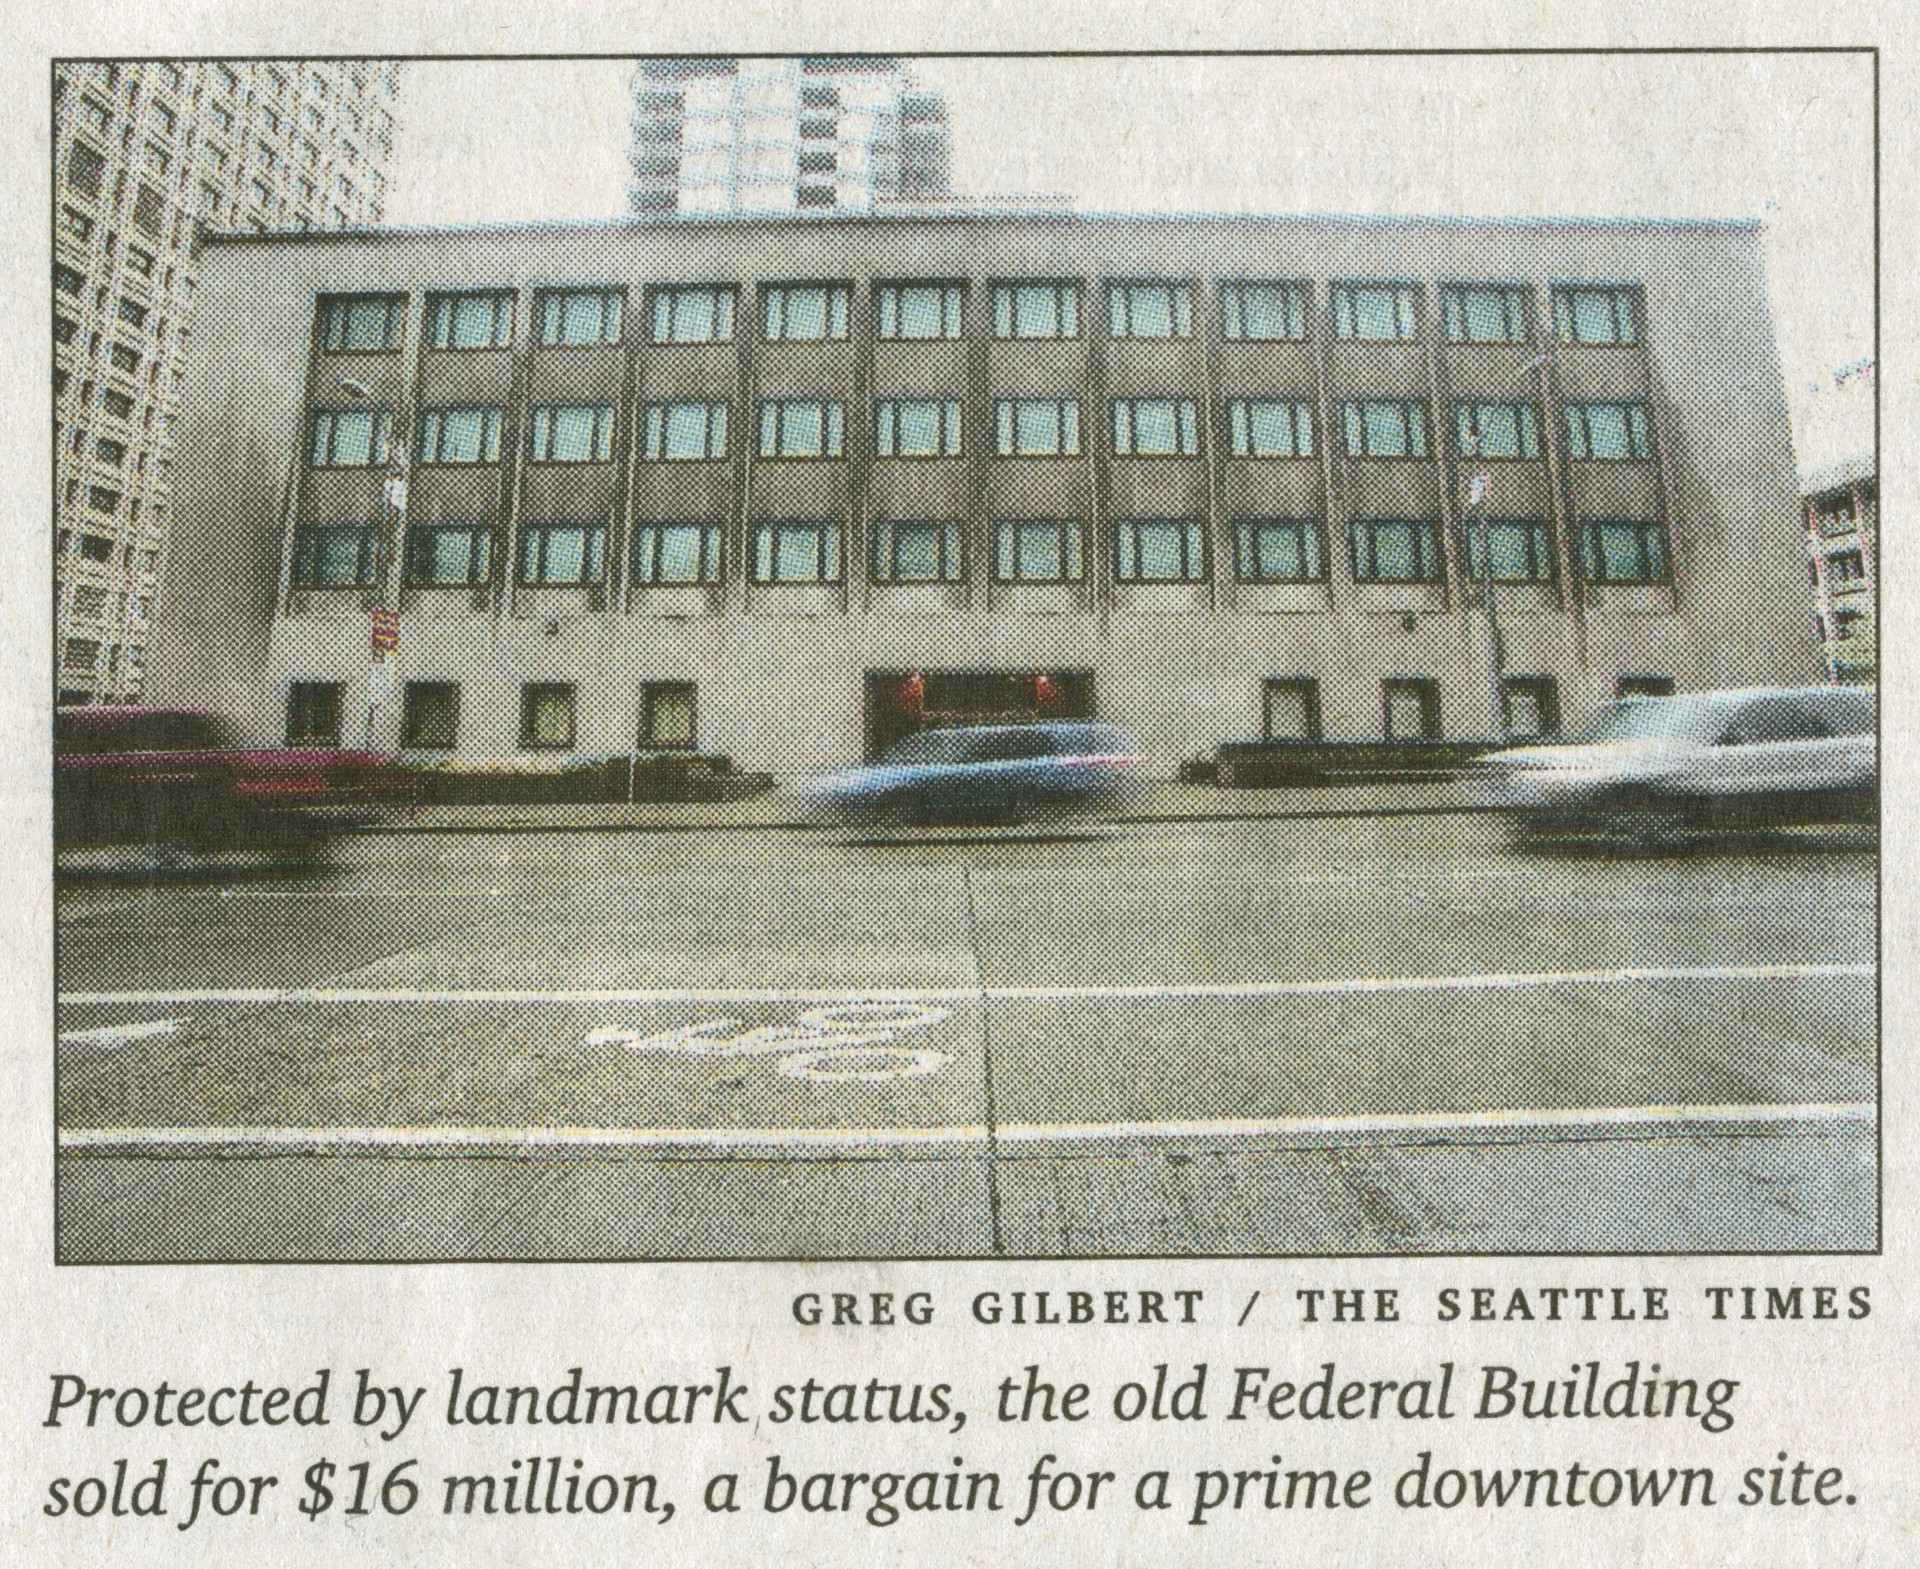 Without Perspective Correction - Aug 4, 2015 Seattle Times